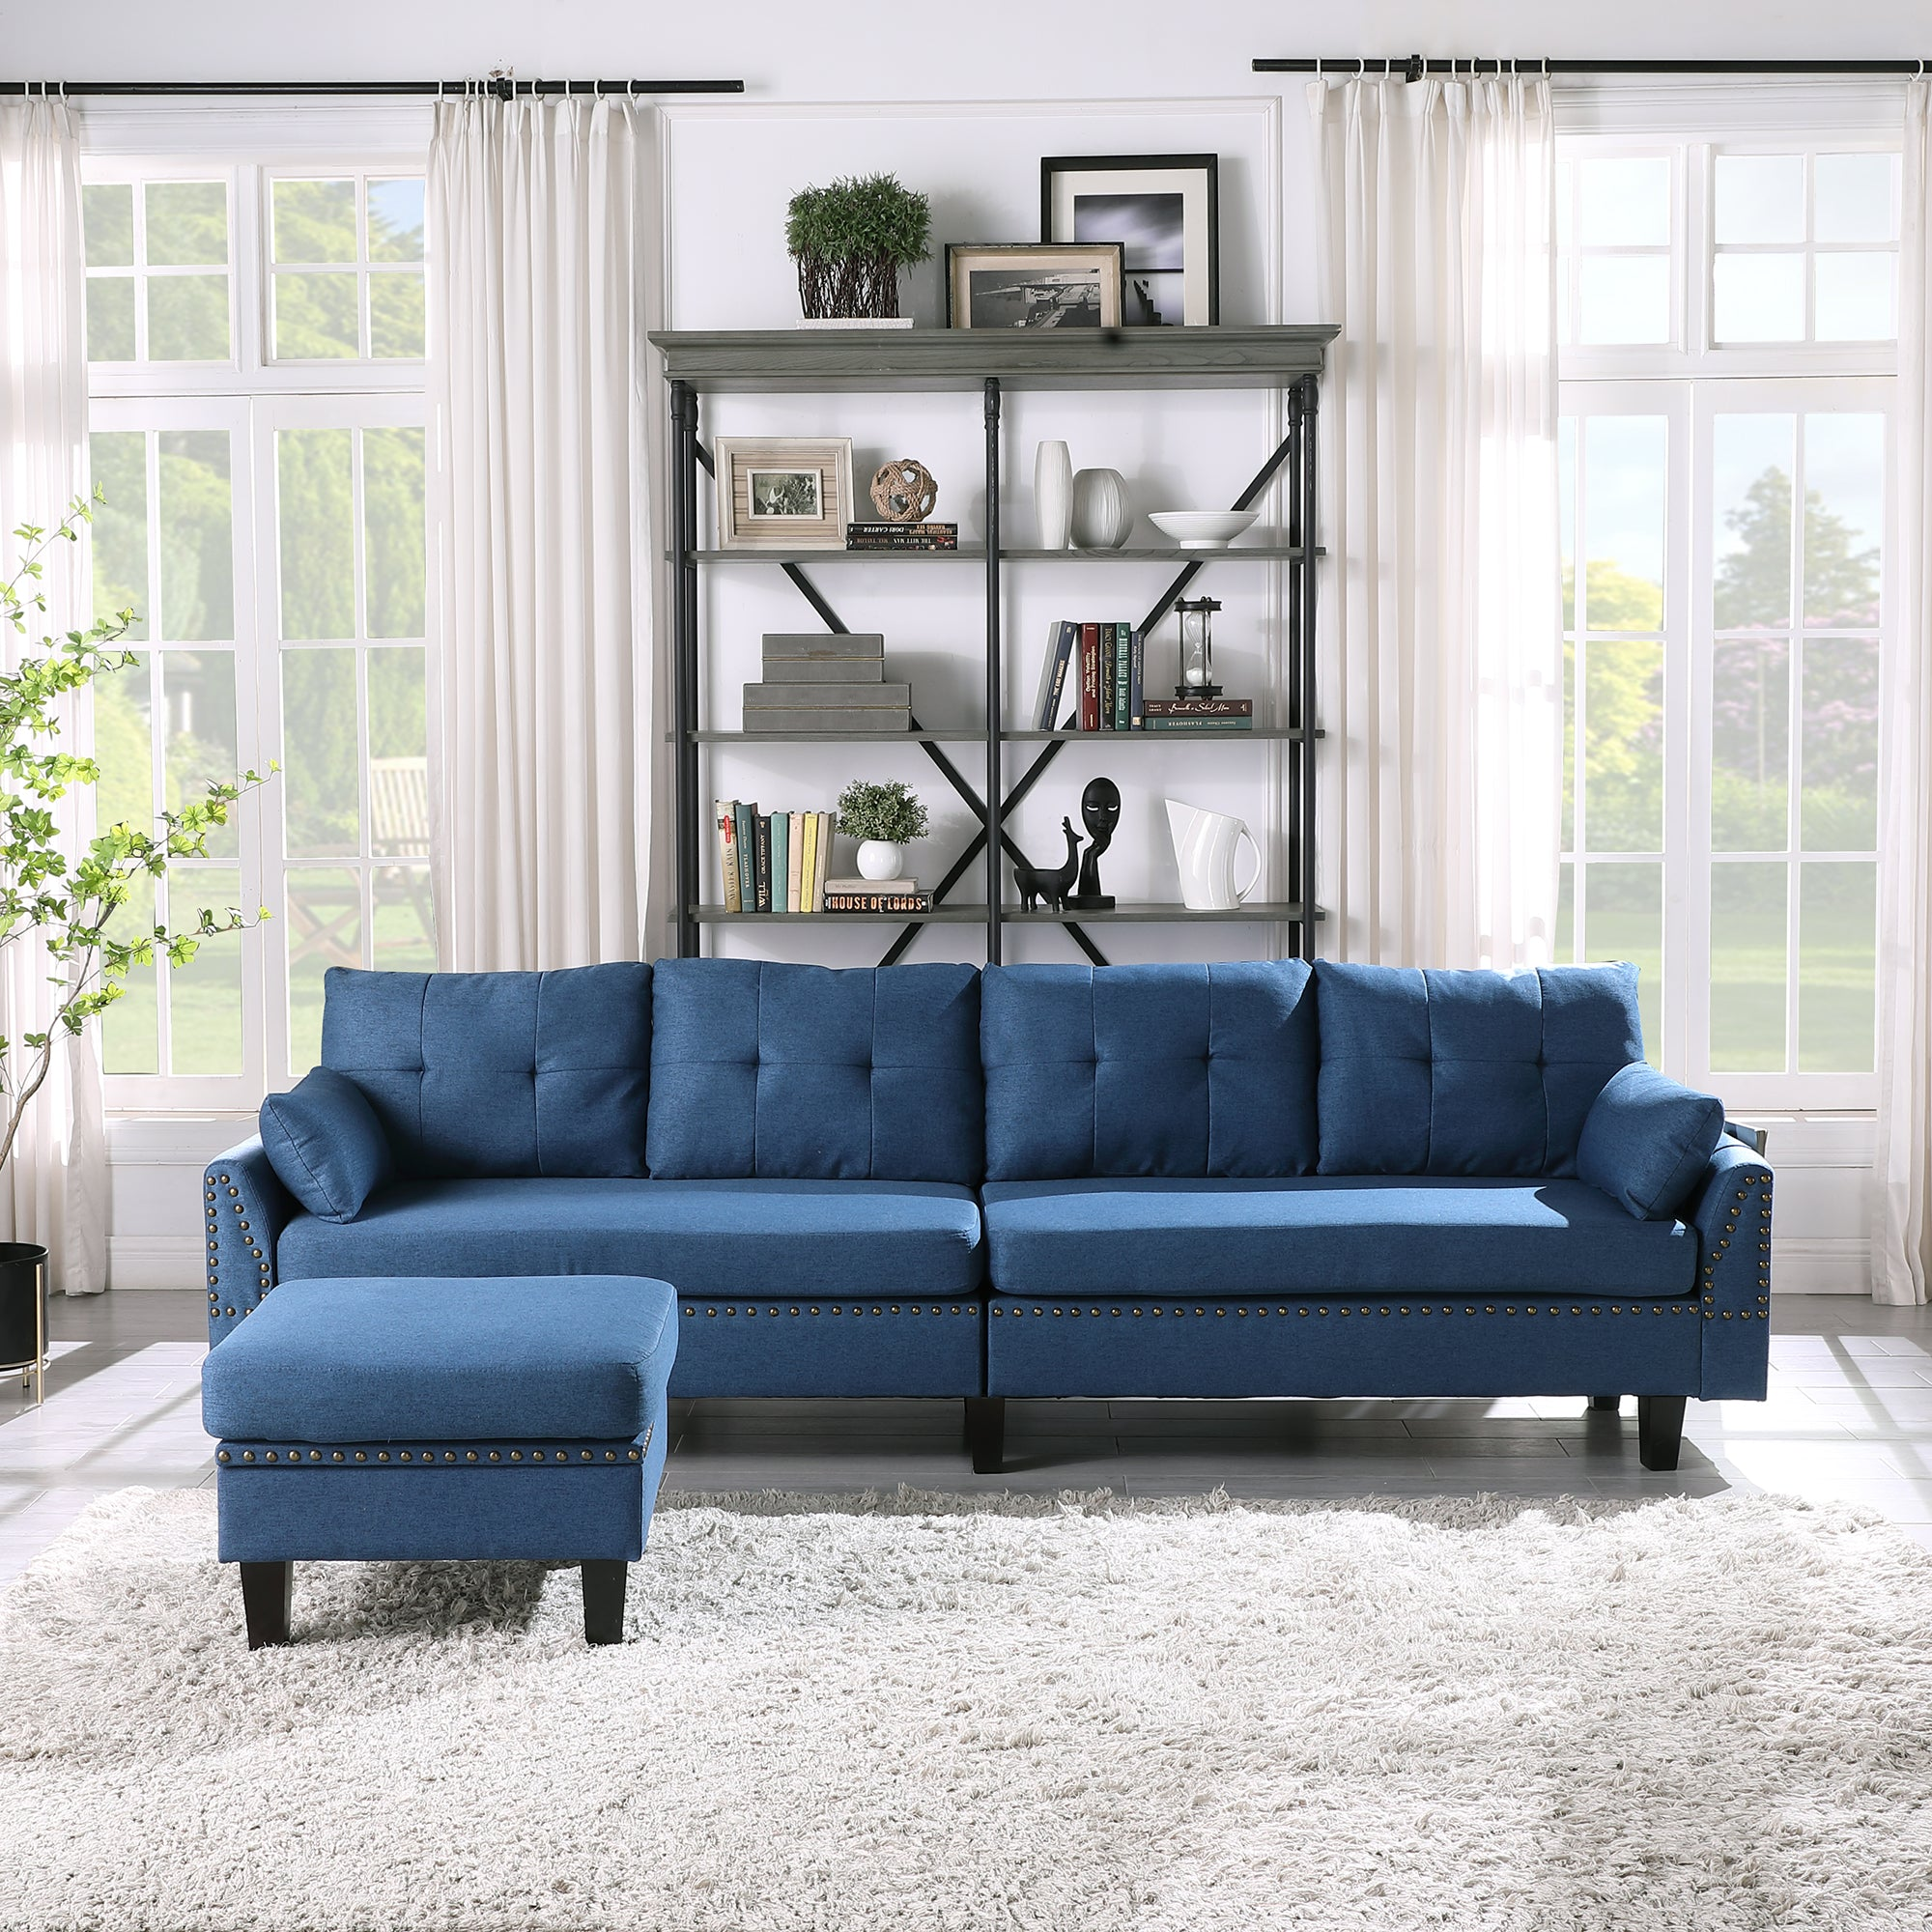 North Europen 4-Seat Couch Sofa For Living Room